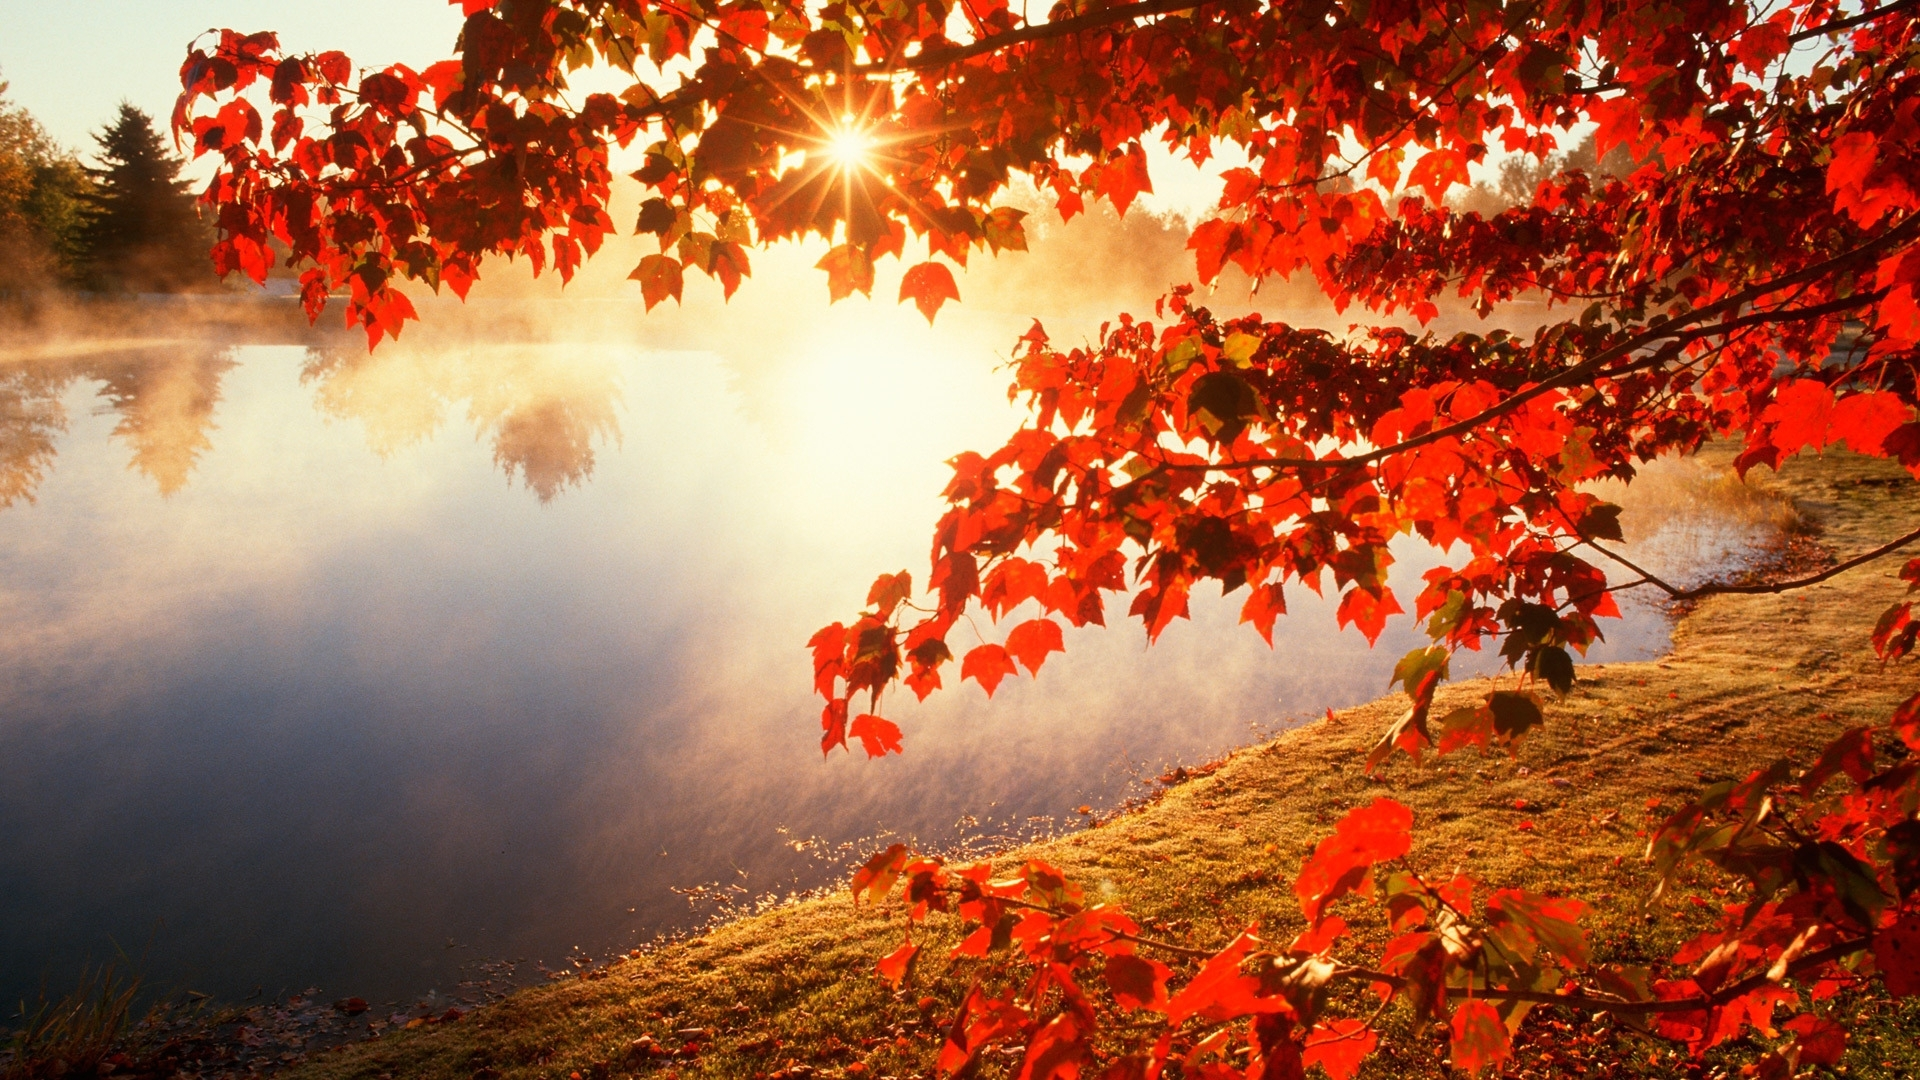 amazing hd quality wallpaper's collection: fall wallpapers (36) of